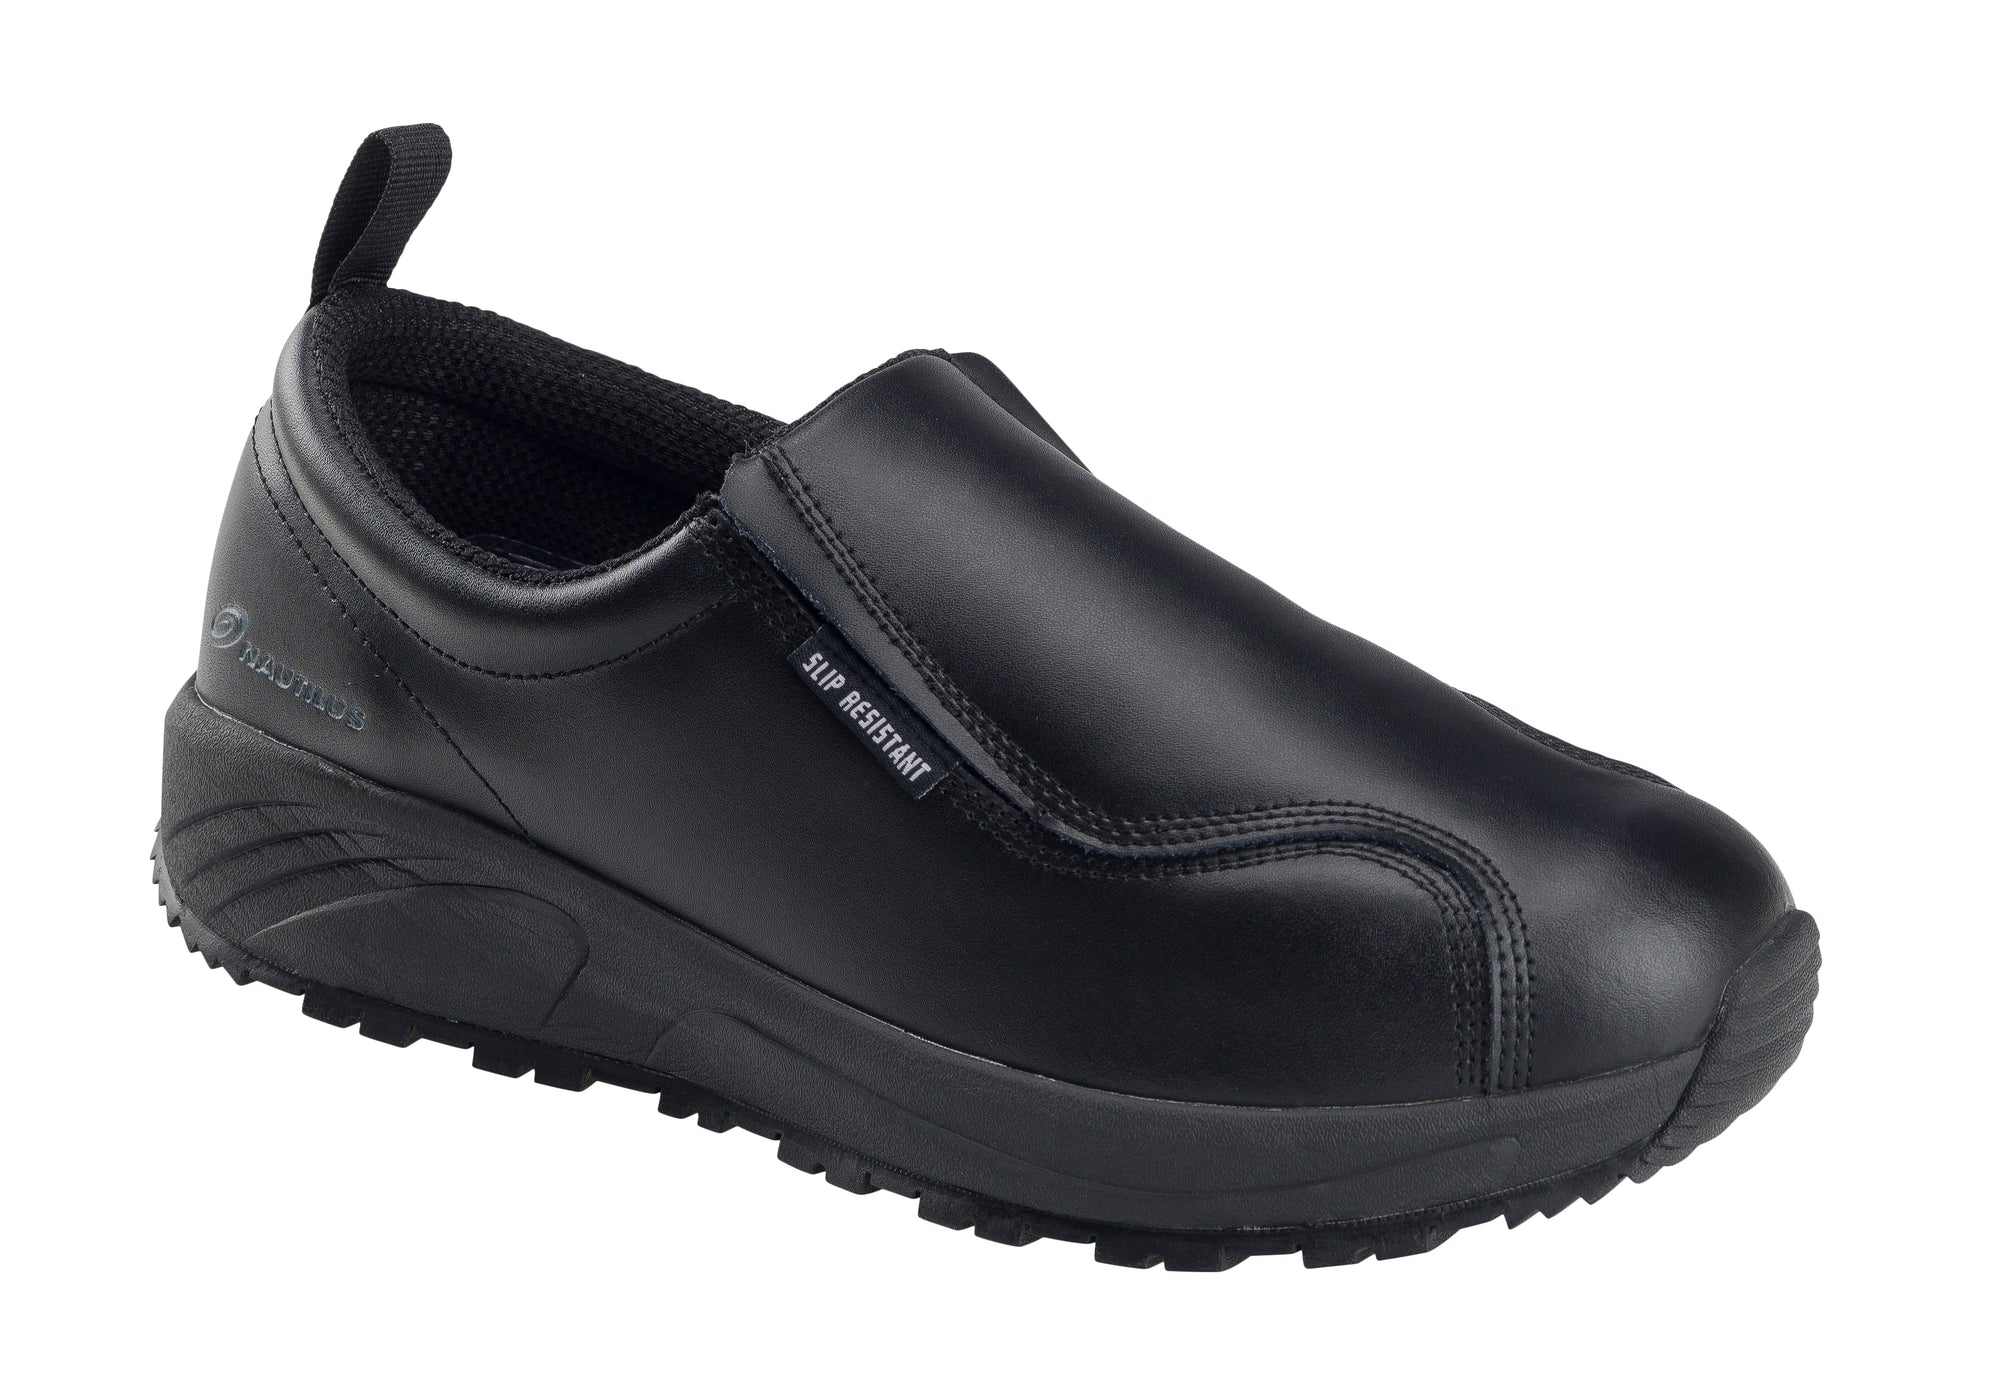 Skidbuster Slip-On Slip-Resistant Soft Toe EH Shoe